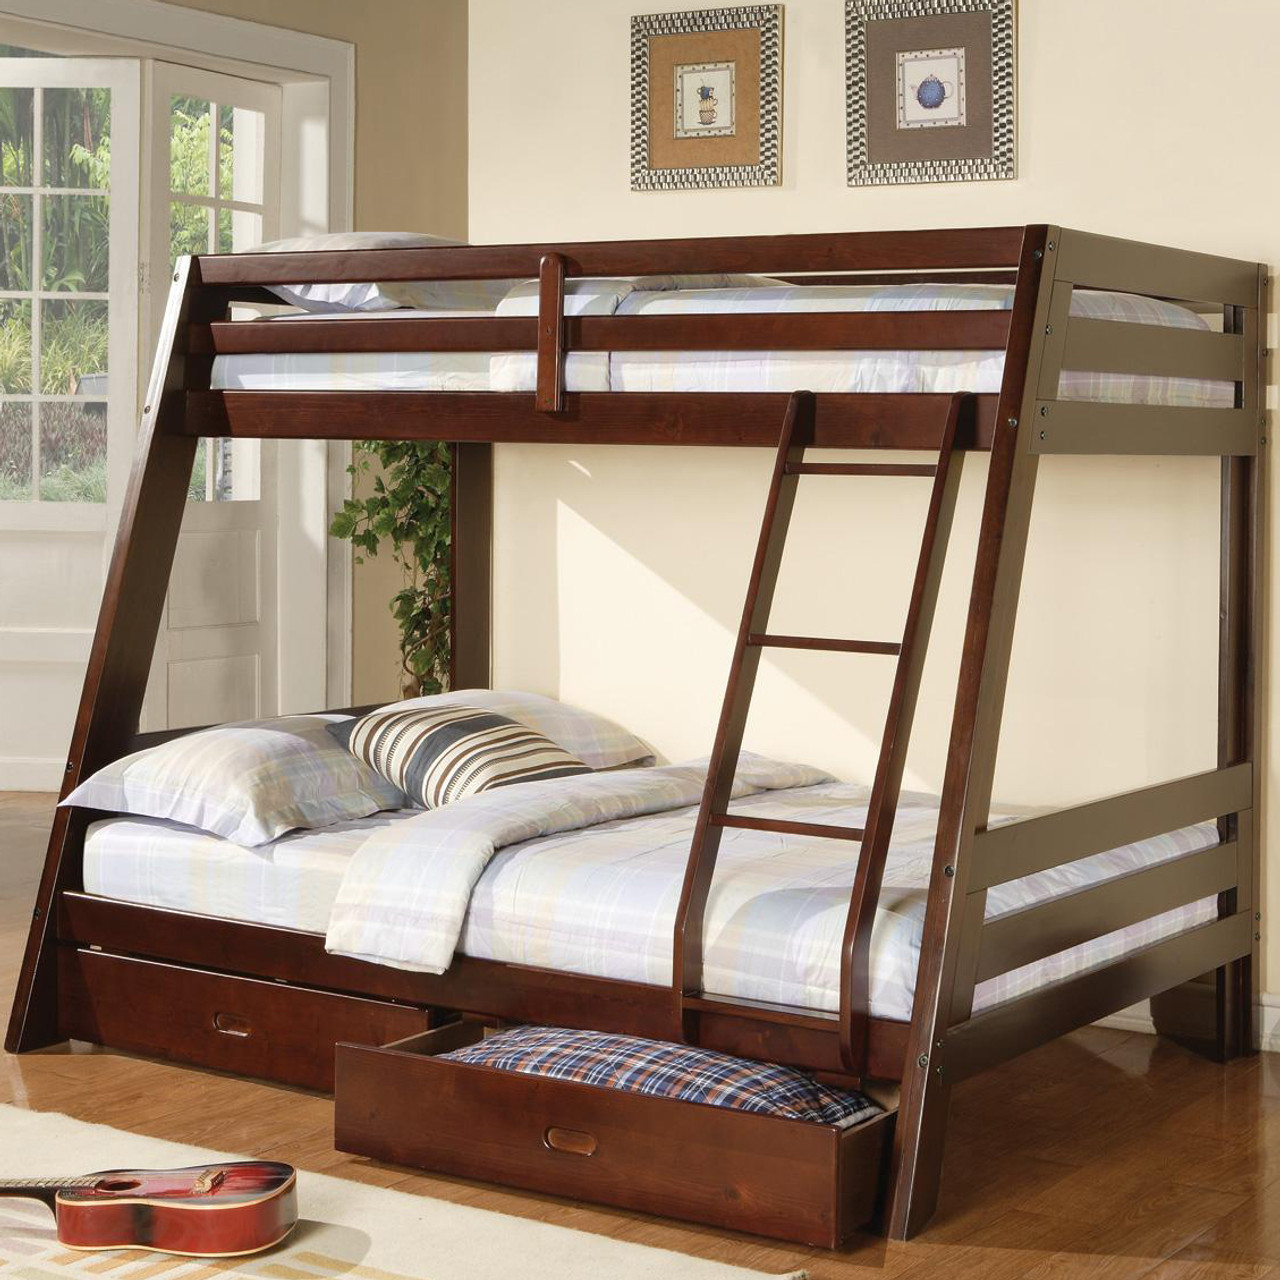 George Cappuccino Twin over Full Bunk Bed with Drawers